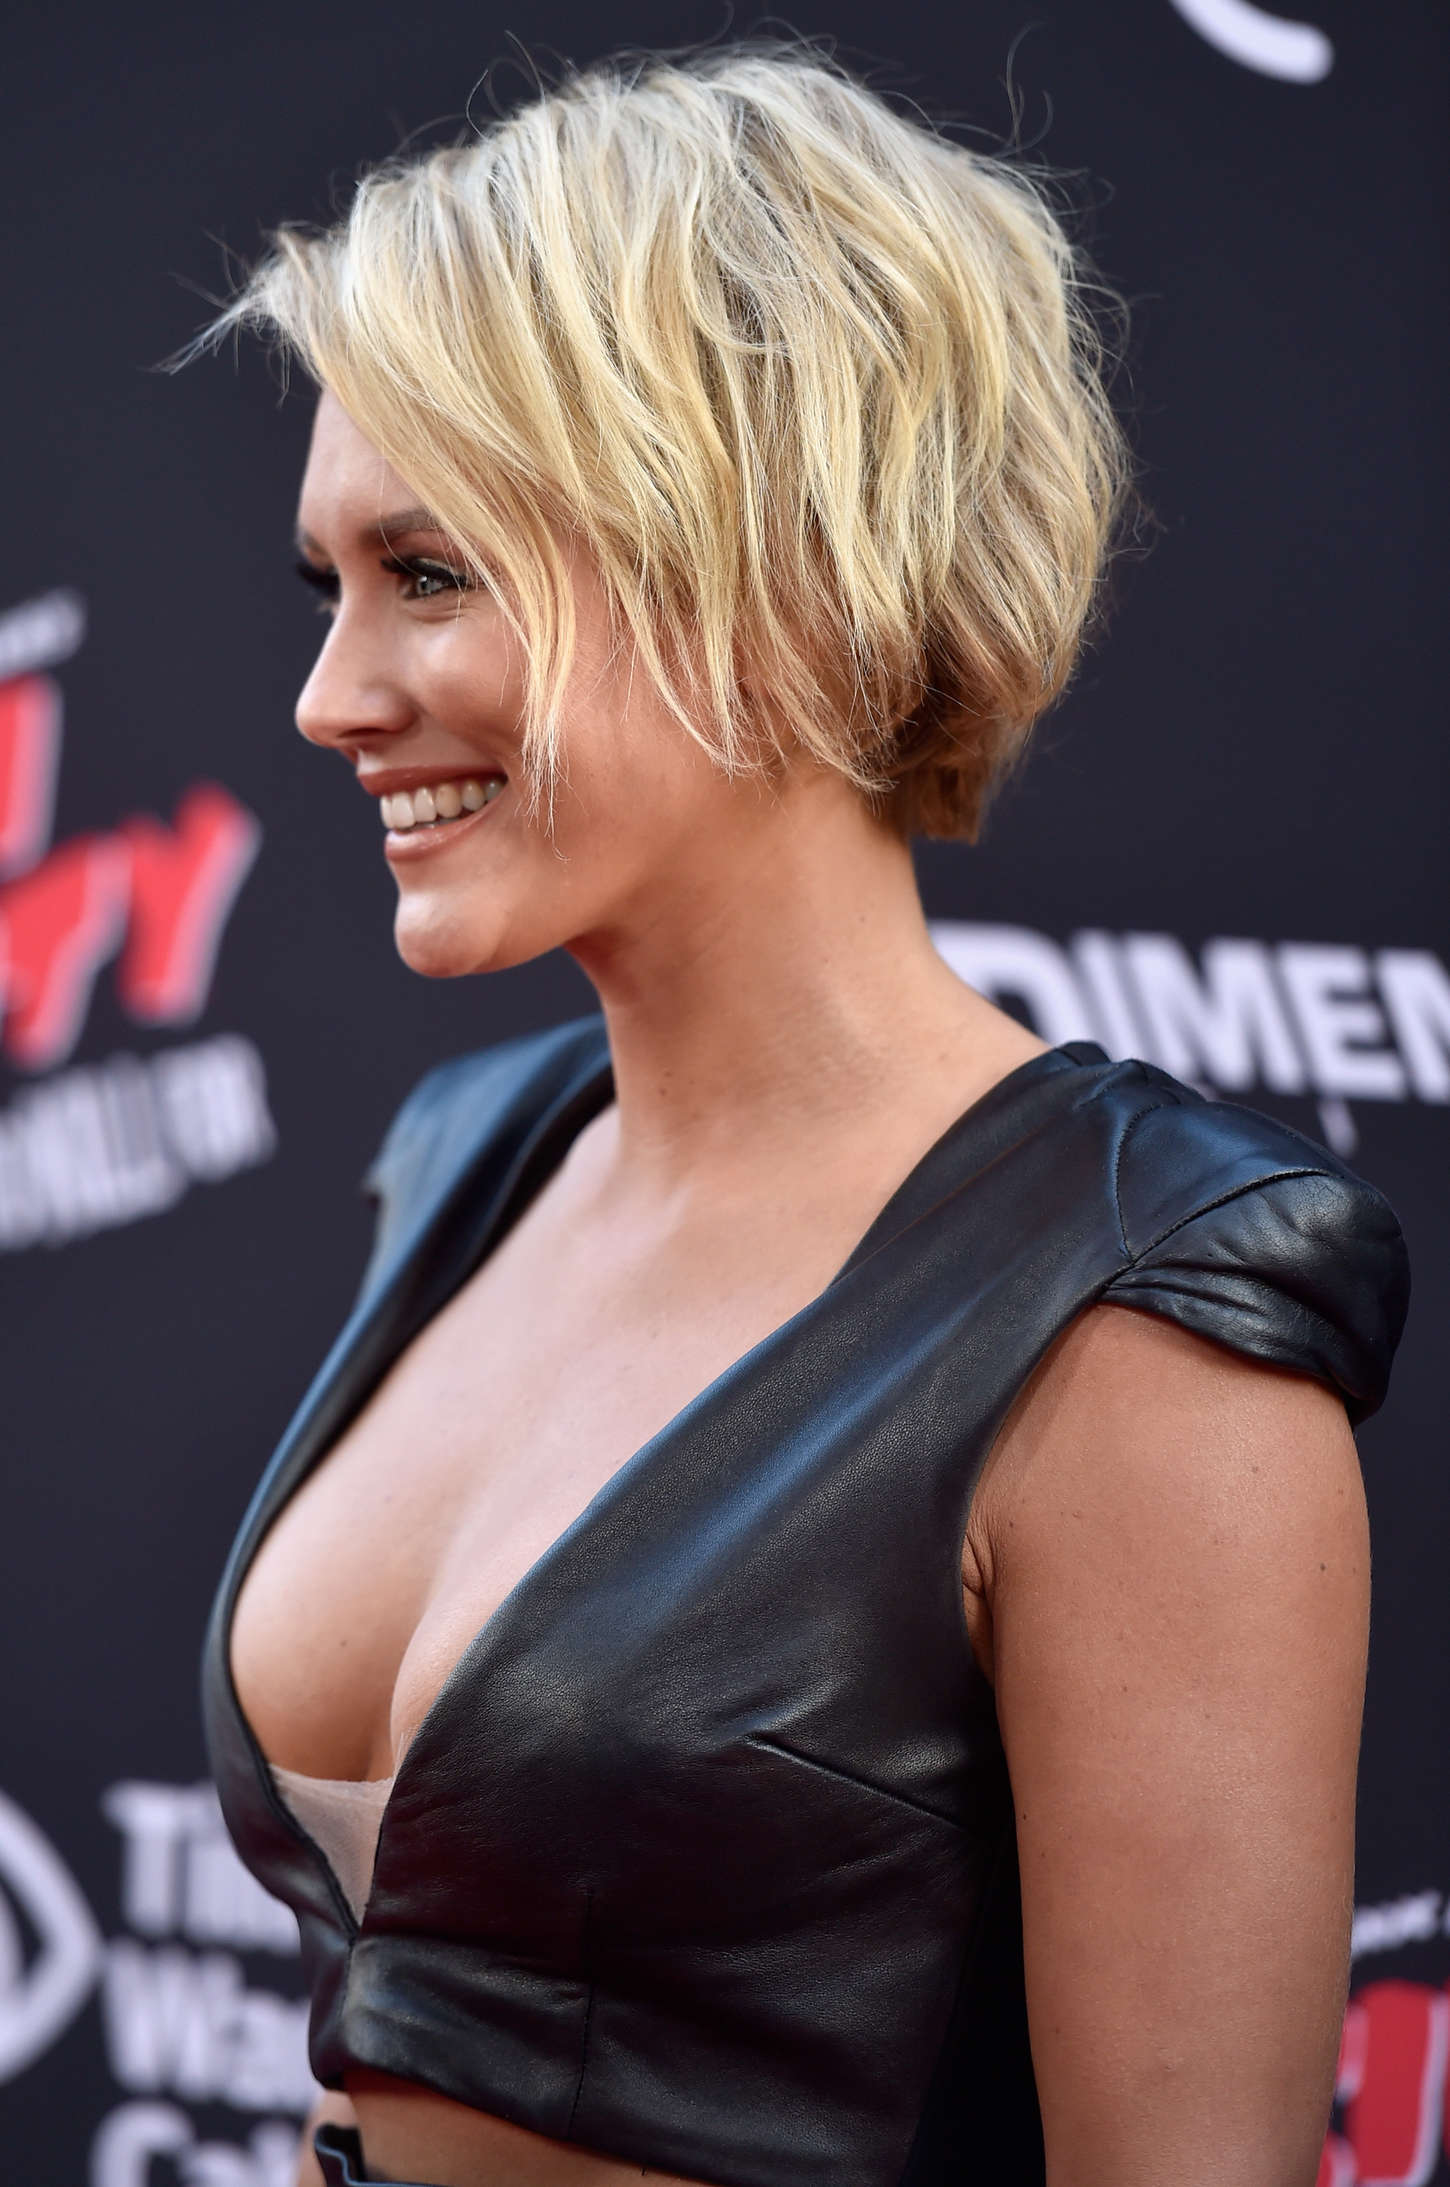 Nicky Whelan Sin City A Dame To Kill For La Premiere 09